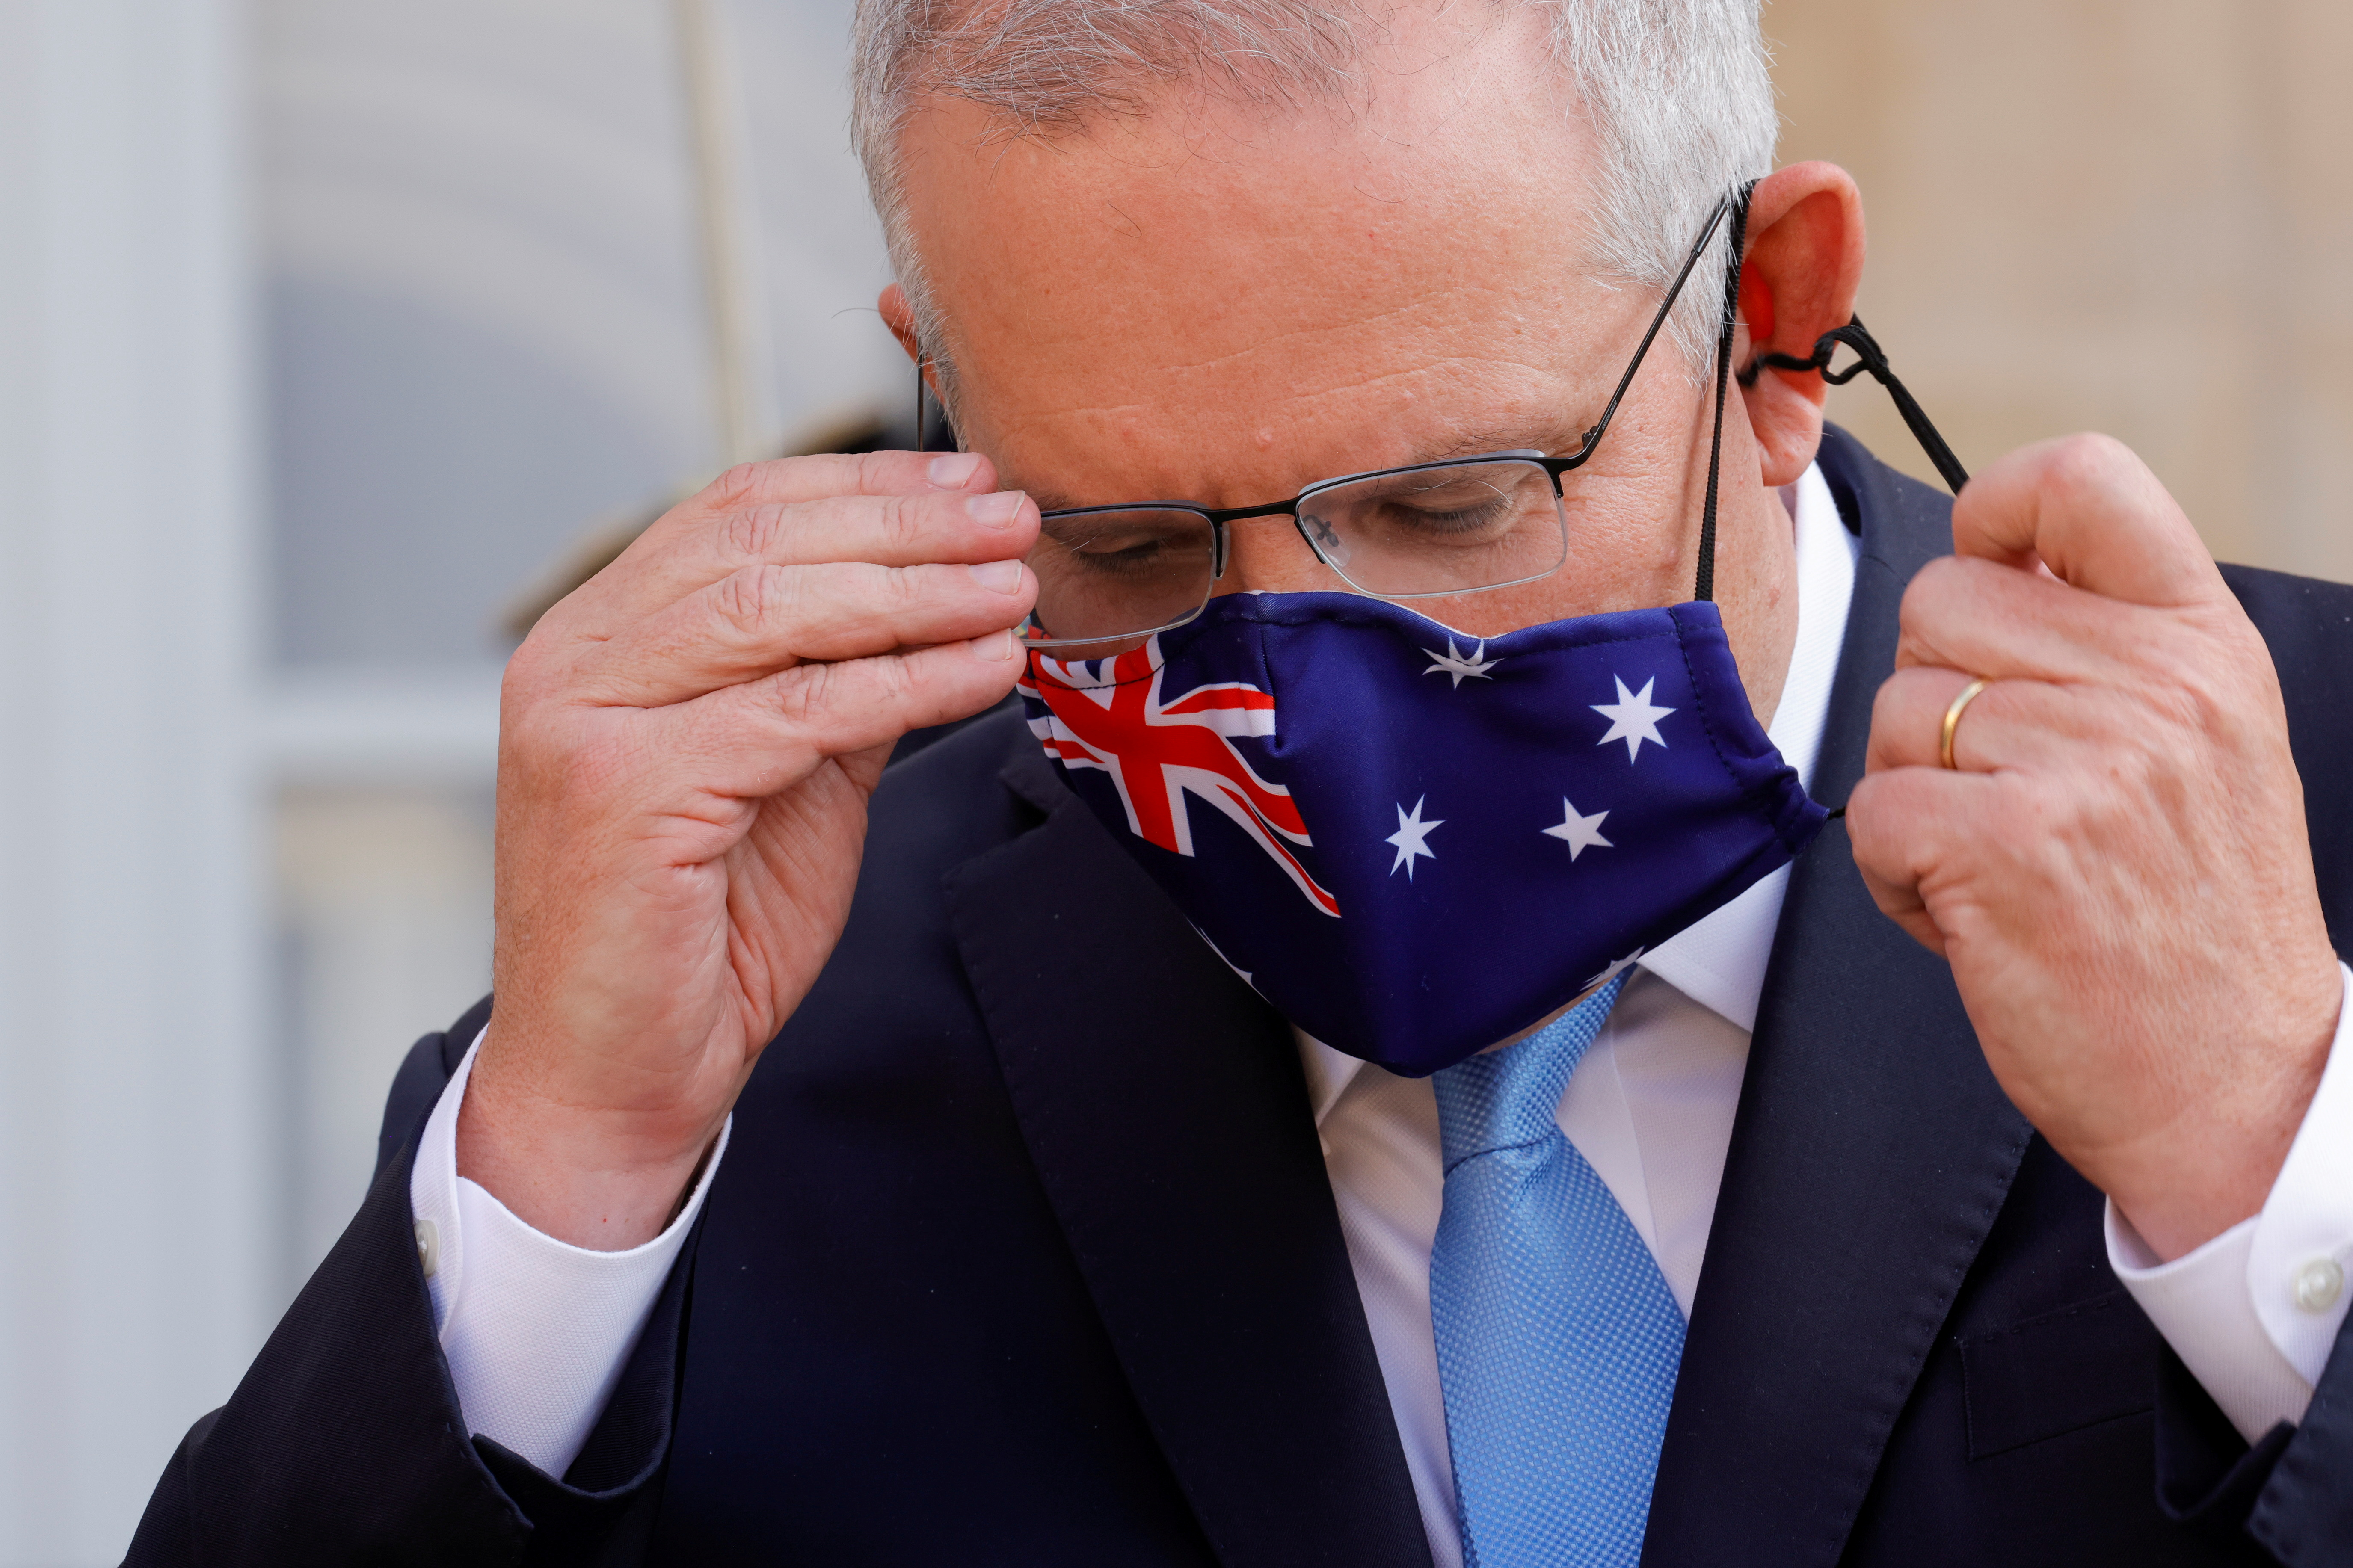 Australian Prime Minister Scott Morrison adjusts his mask during a news conference he holds with French President Emmanuel Macron in front of the Elysee Palace in Paris, France, June 15, 2021. REUTERS/Pascal Rossignol